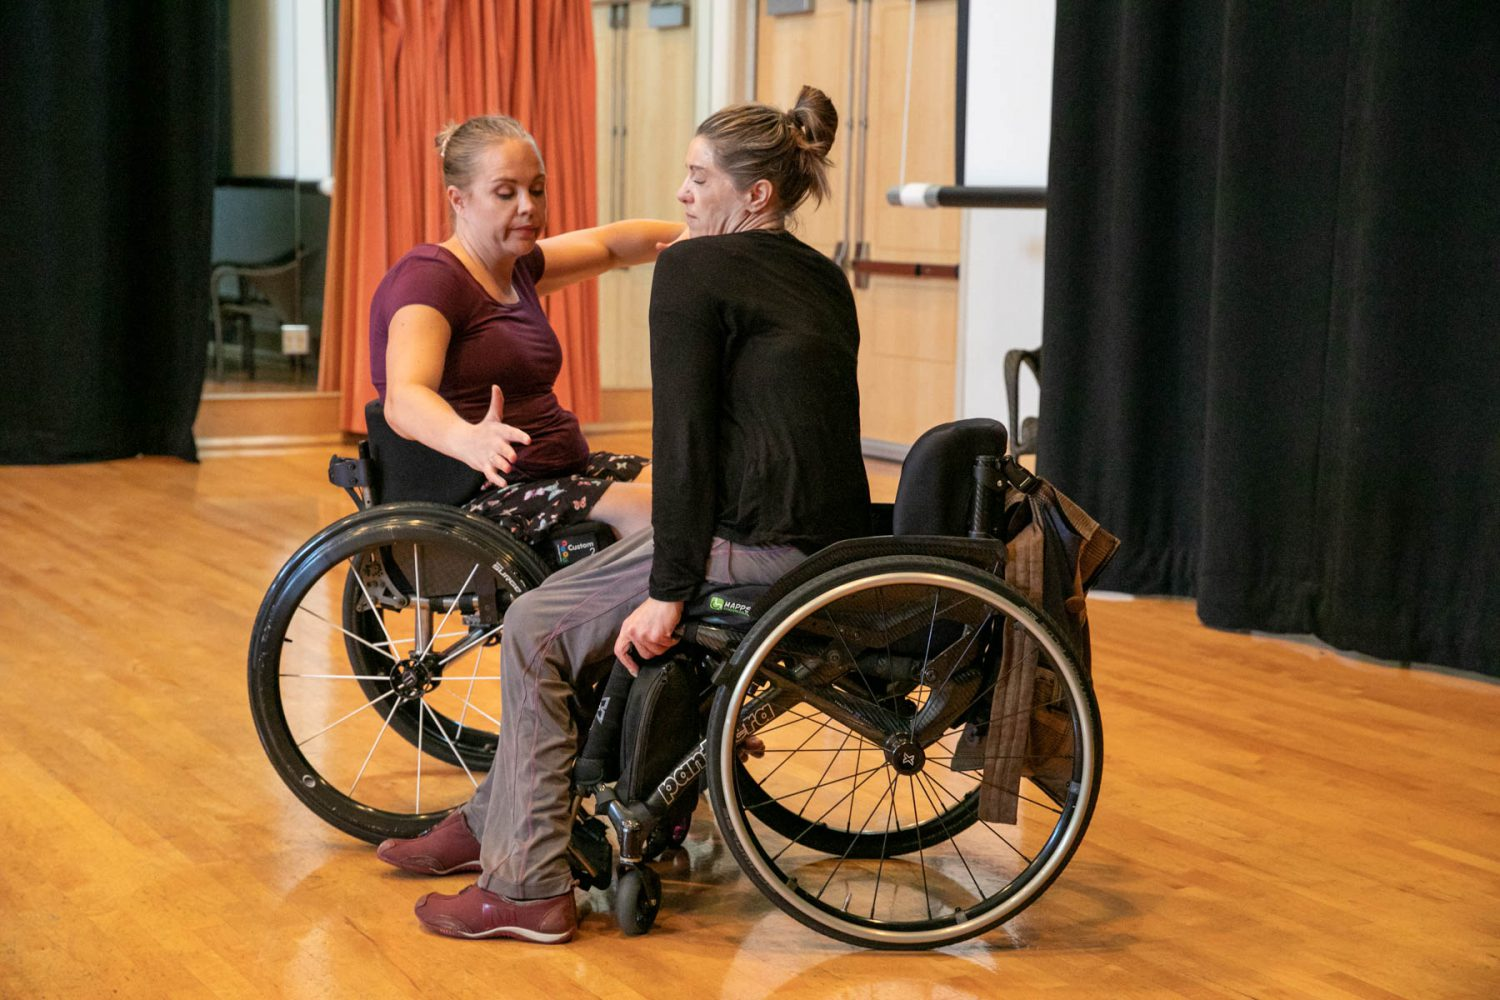 Harmonie and Suzanne, both in wheelchairs, dance closely together.